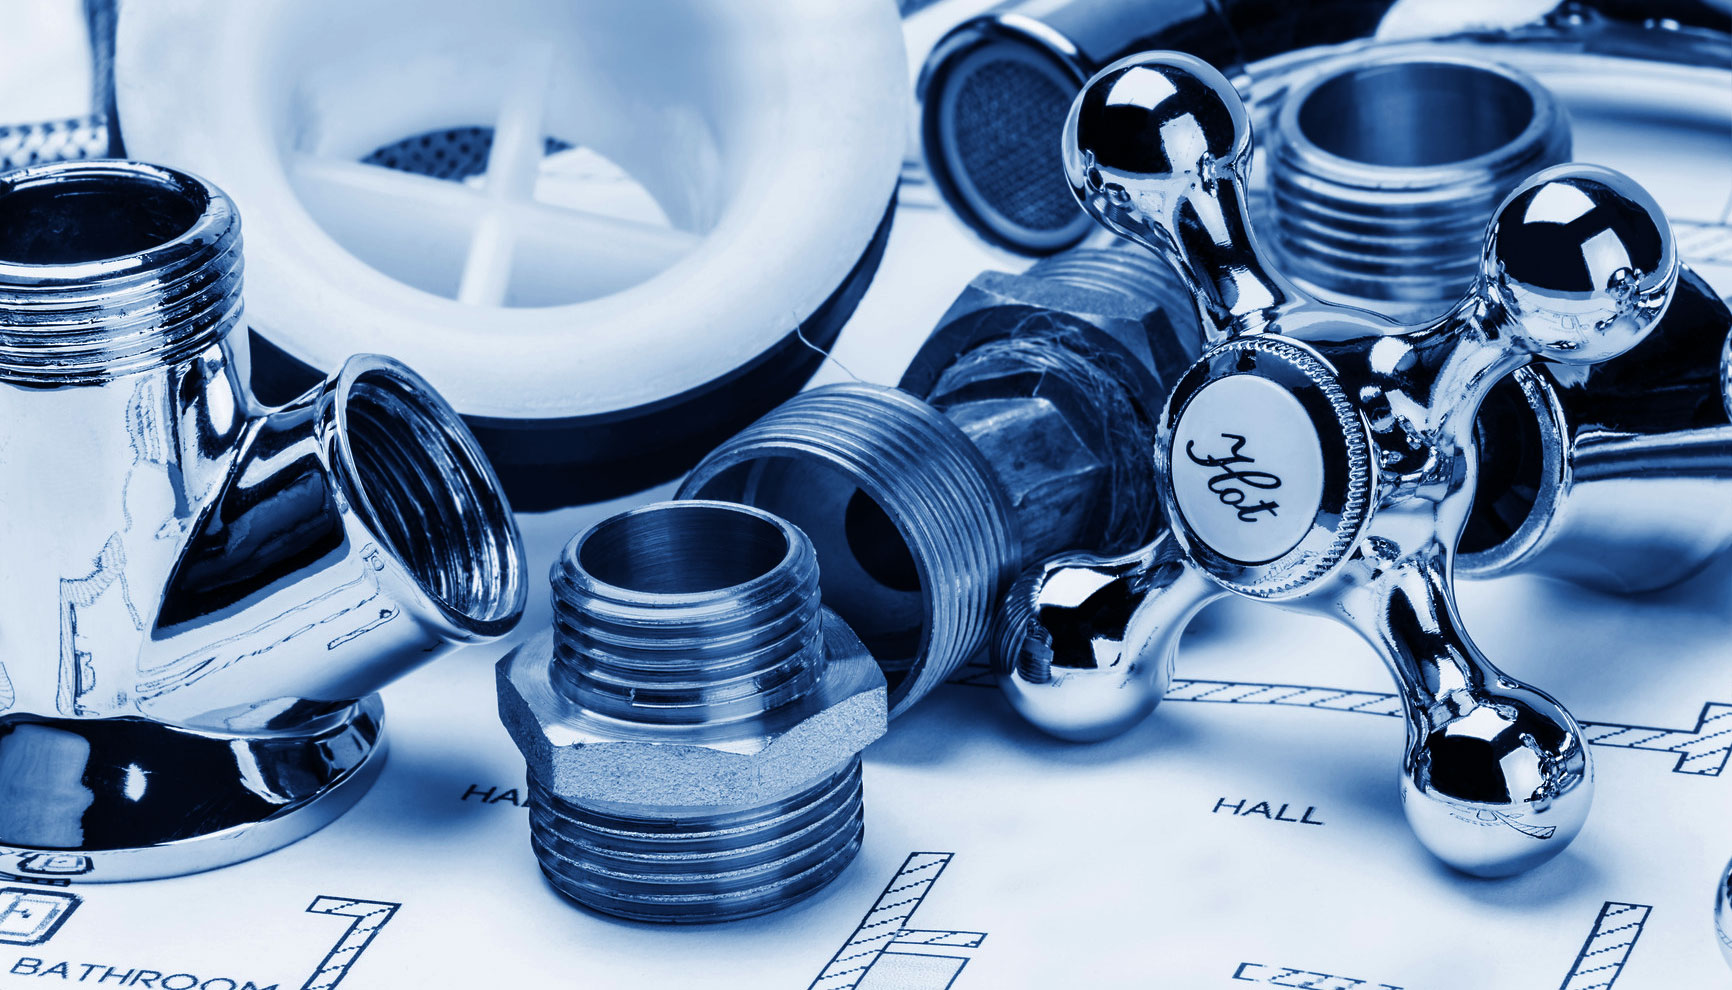 Plumbing Tips That Will Save You Money